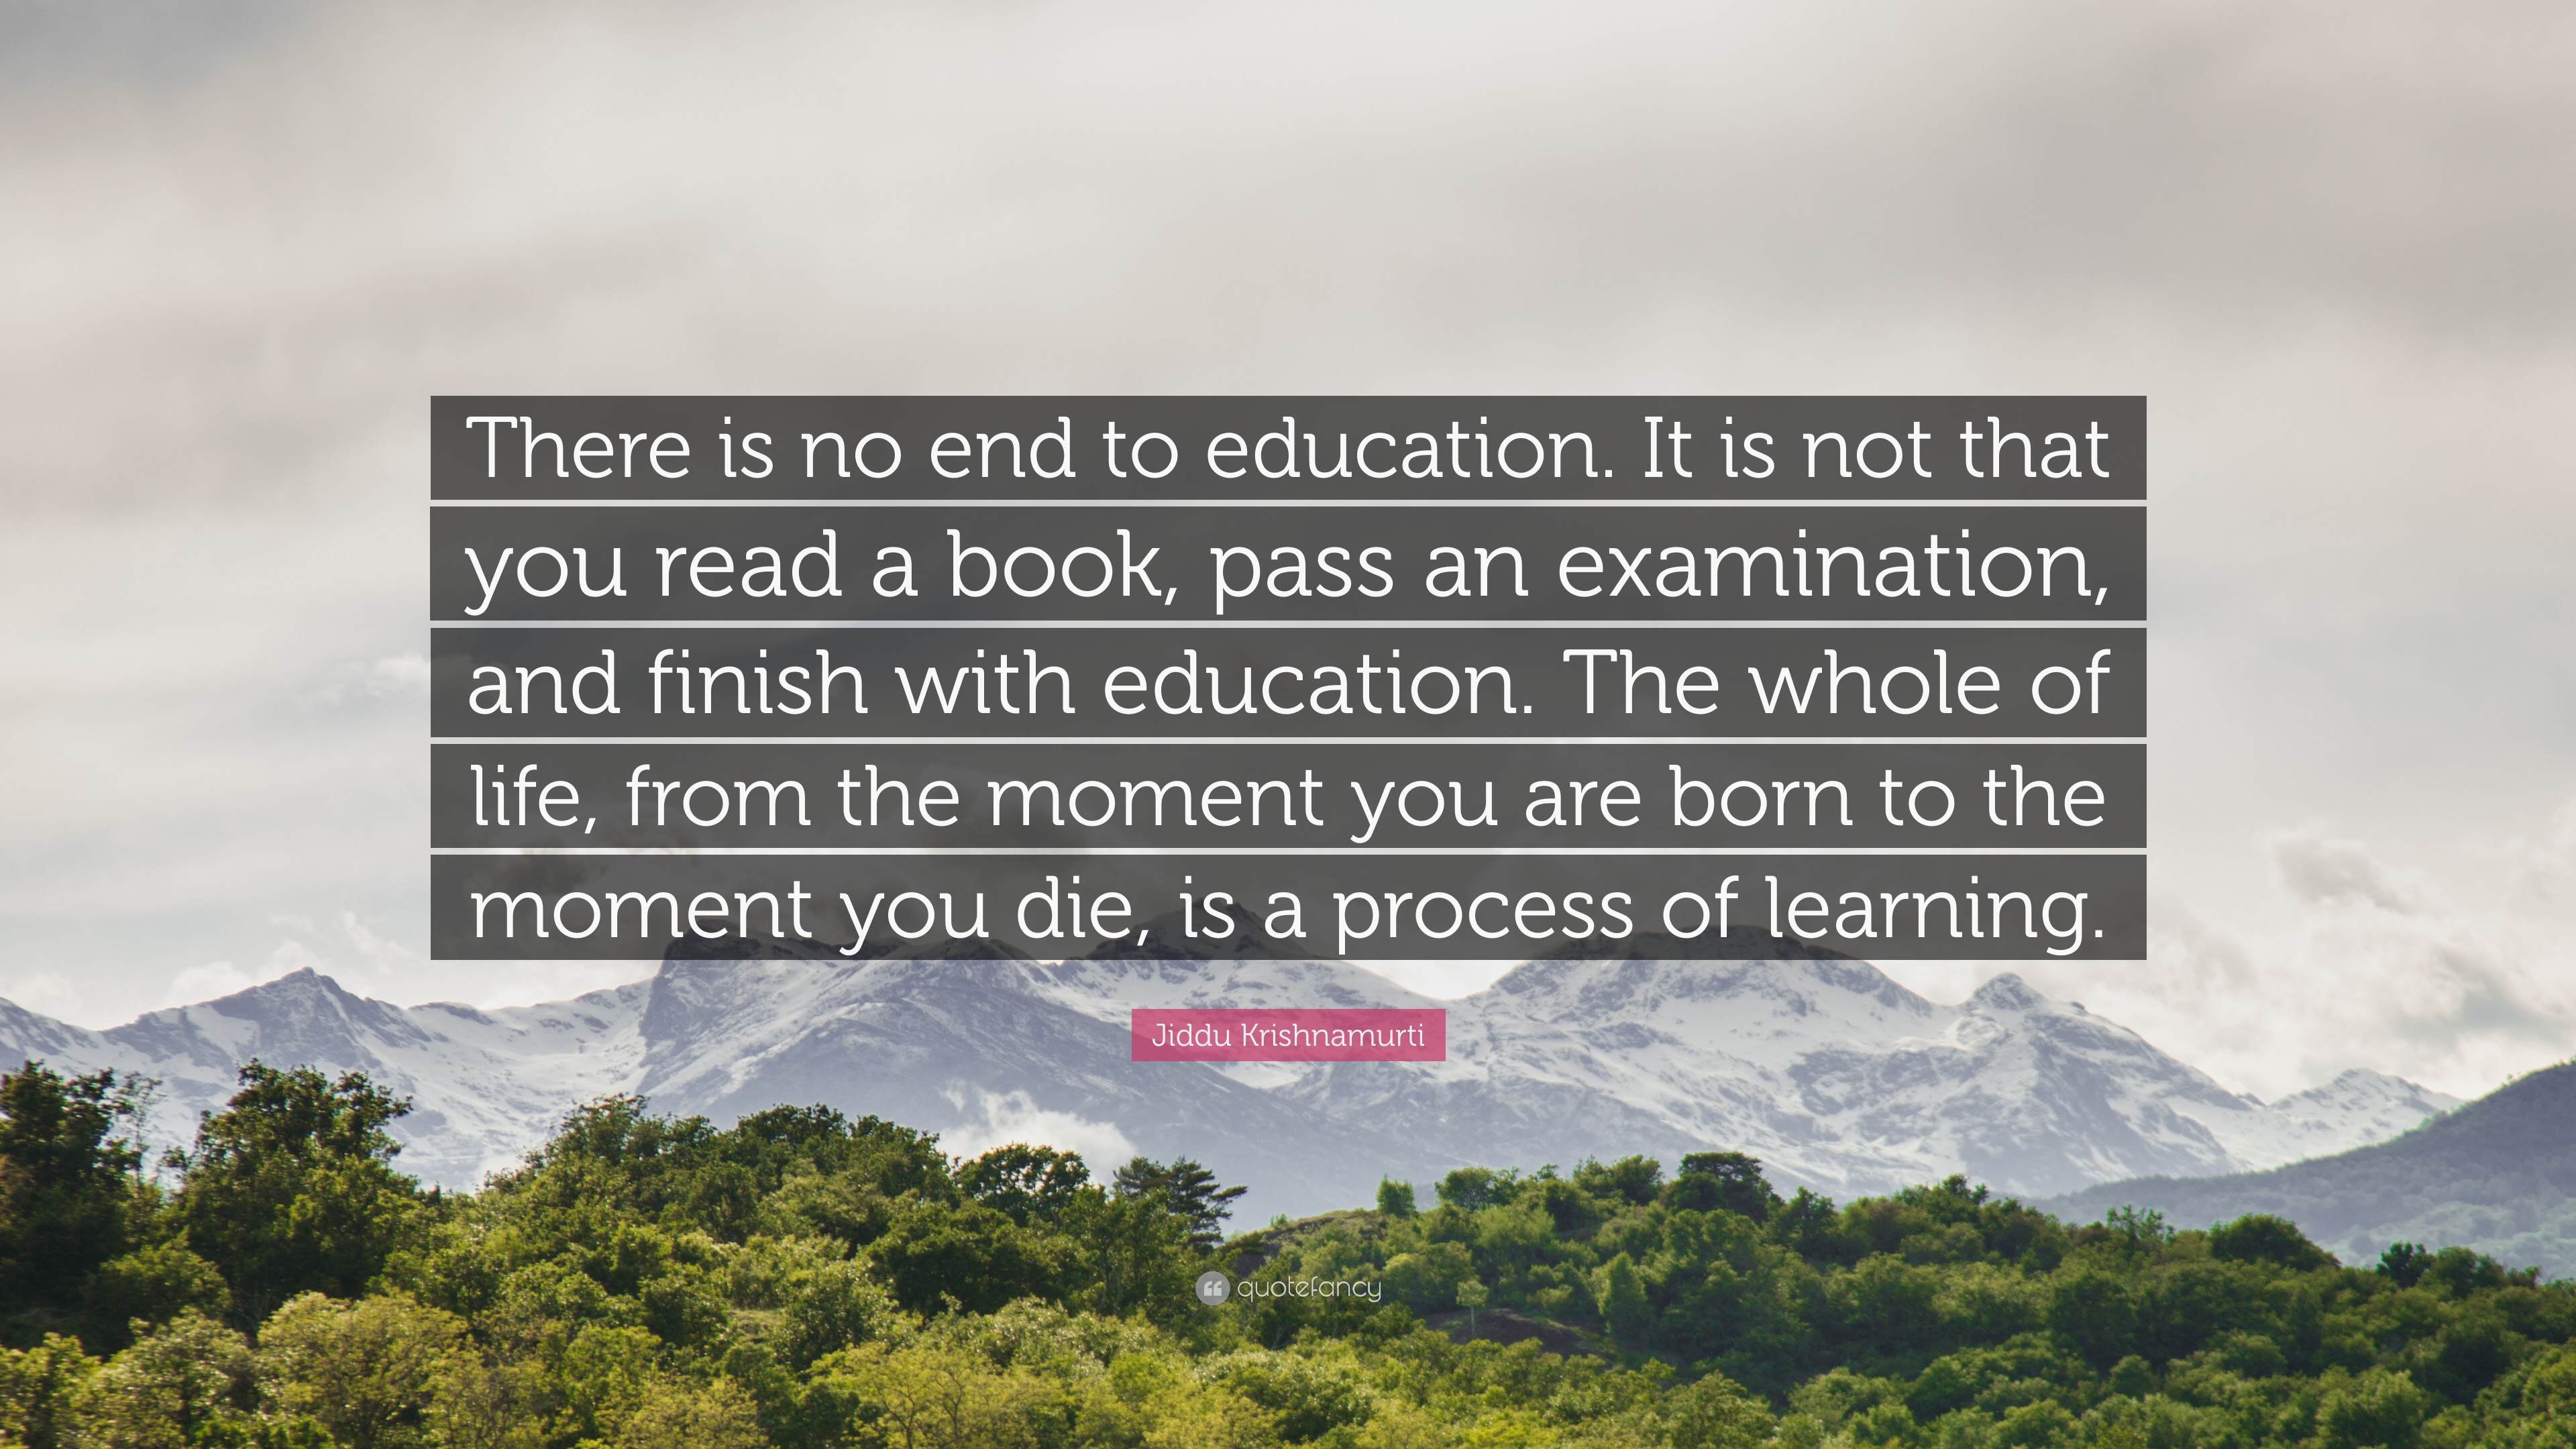 Jiddu Krishnamurti Quote: U201cThere Is No End To Education. It Is Not That